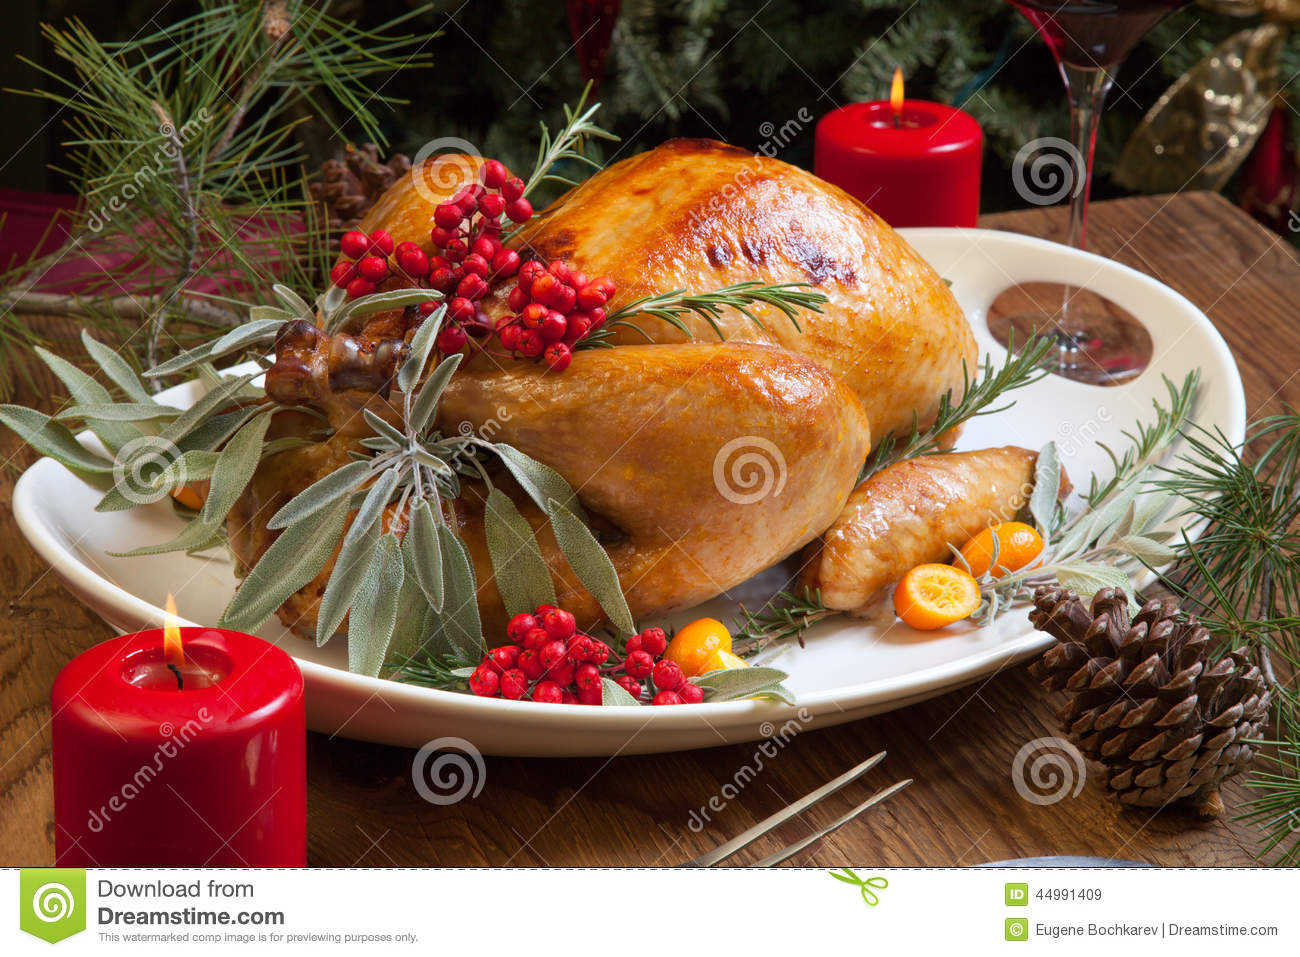 Prepared Christmas Dinners To Go  Christmas Turkey Prepared For Dinner Stock Image Image